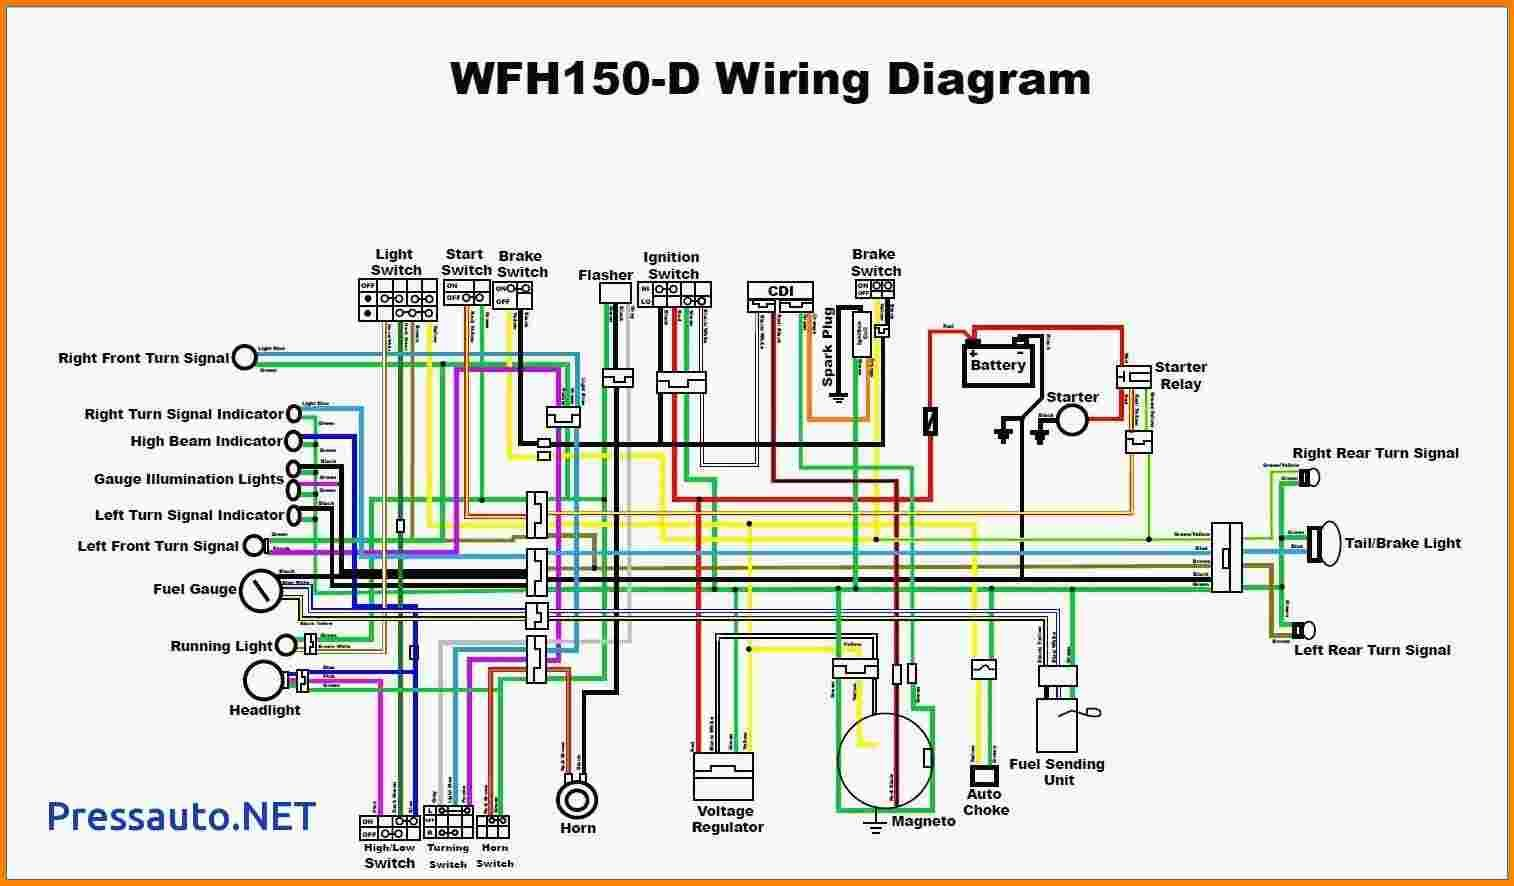 90 atv wiring diagram wiring diagram schema 2007 baja 90 atv wiring diagram 90 atv wiring diagram [ 1514 x 886 Pixel ]